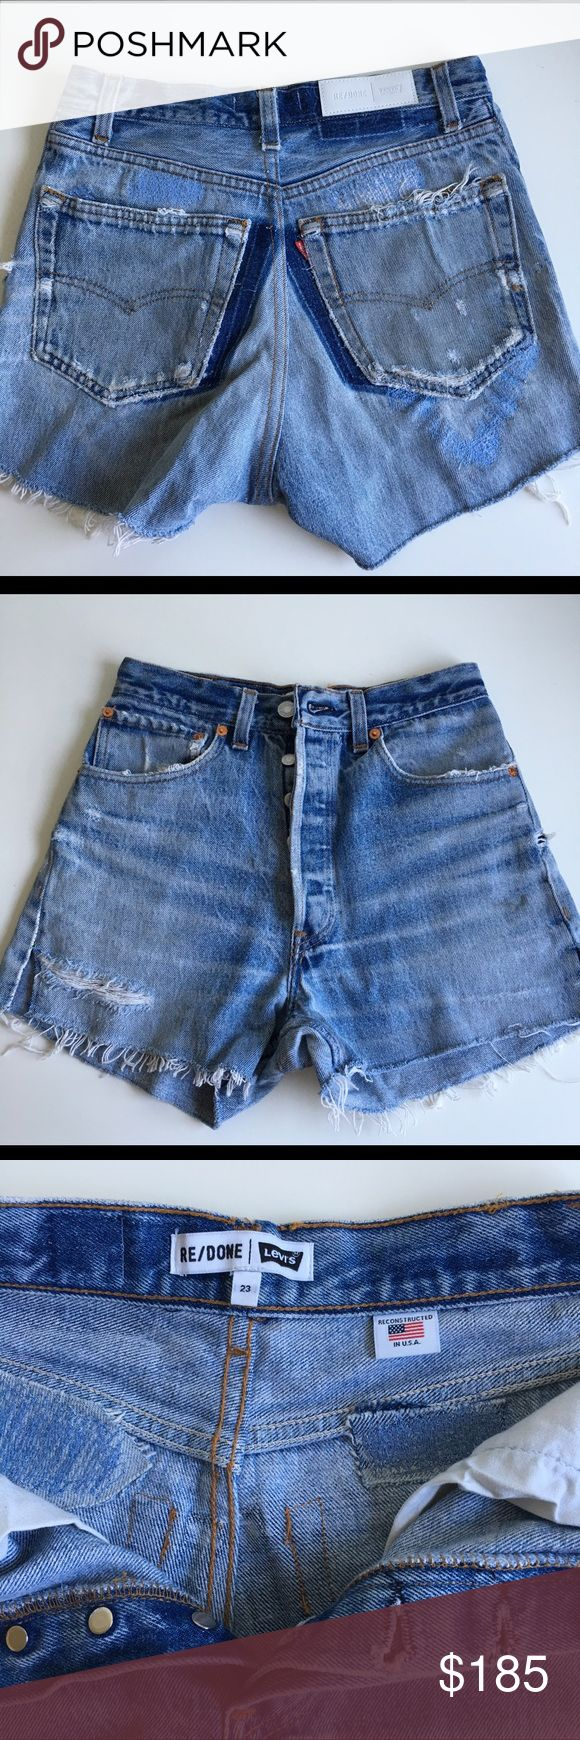 Levi's Redone High Rise Shorts 23 fits 25 Preowned, worn a couple of times. In perfect condition. Would definitely fit 25 Re/Done Shorts Jean Shorts